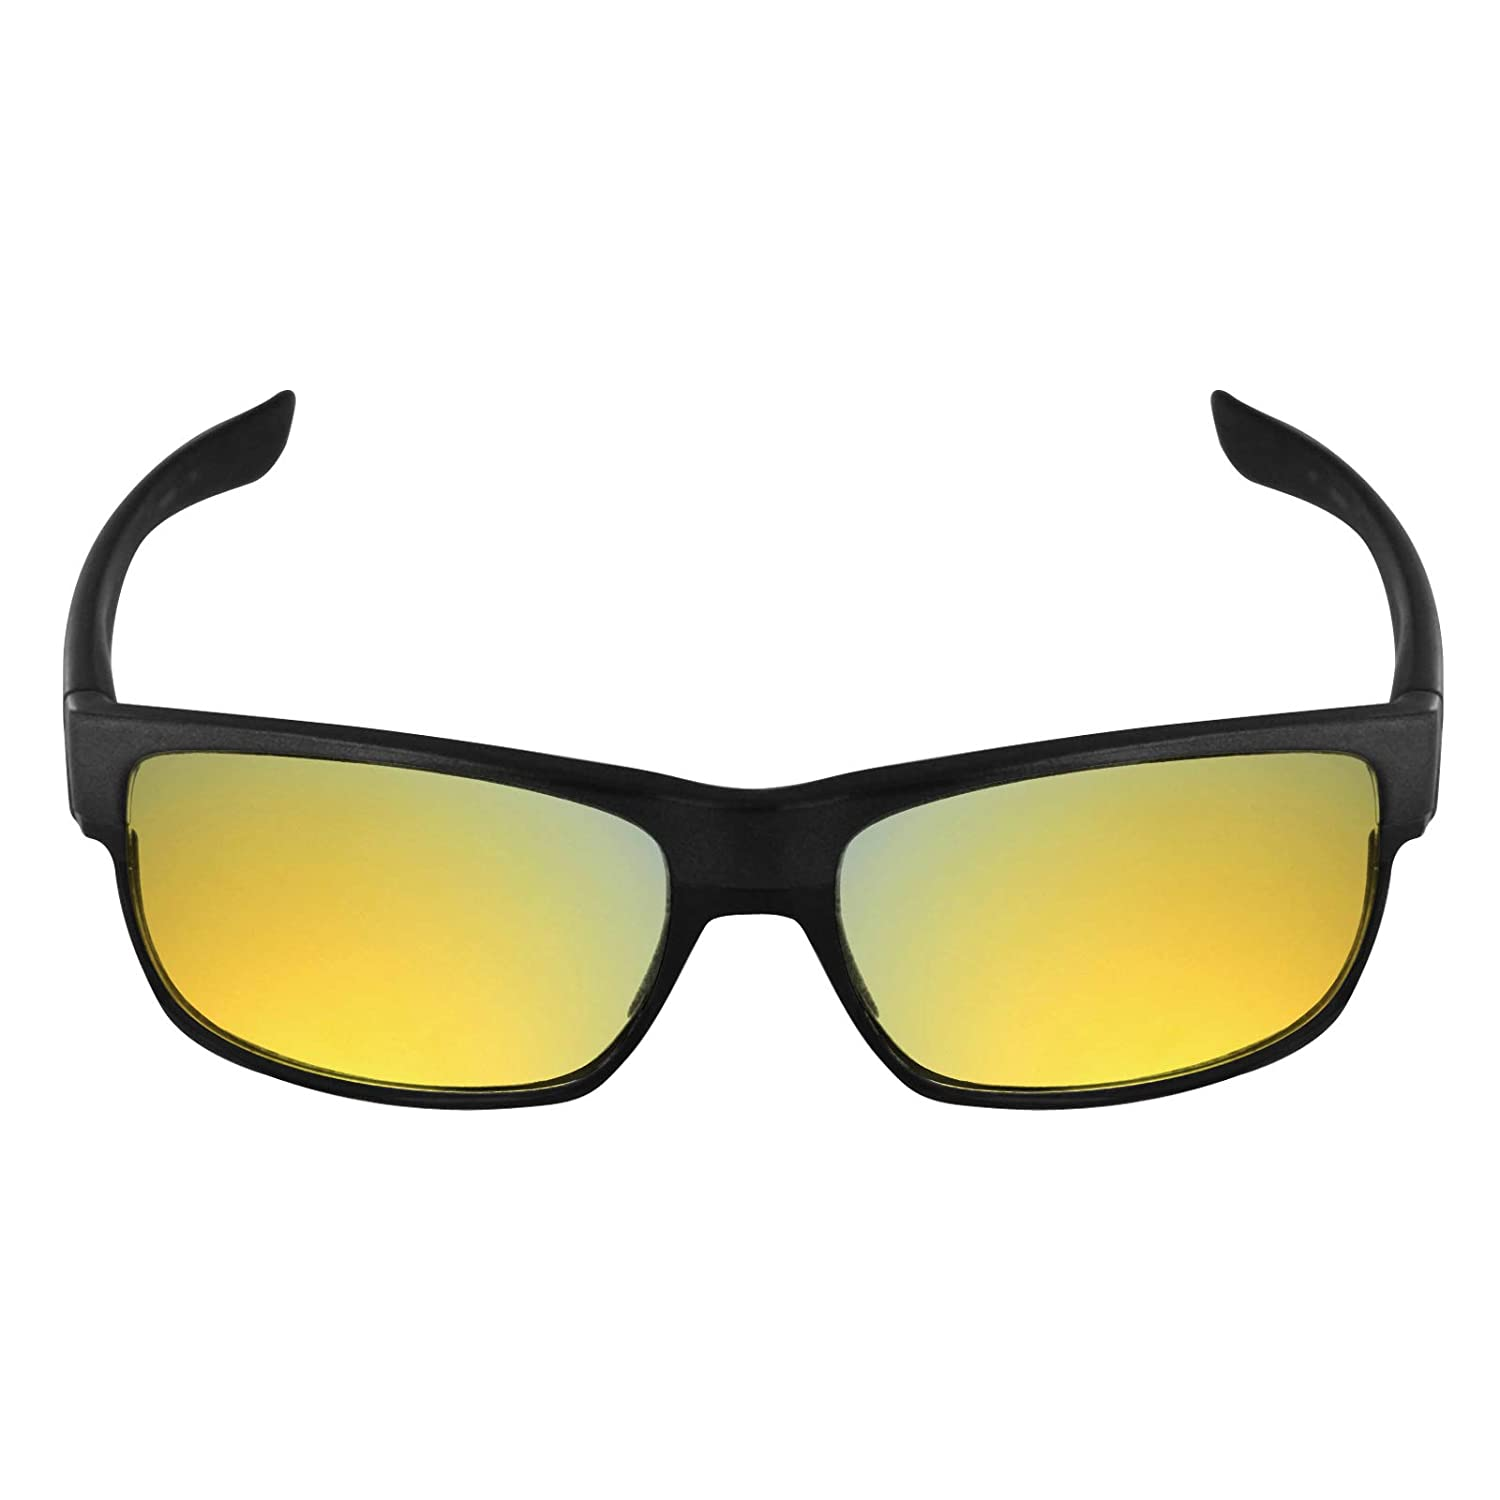 252bfbc9f3 Mryok Replacement Lenses for Oakley TwoFace Sunglasses - Rich Options   Amazon.ca  Clothing   Accessories